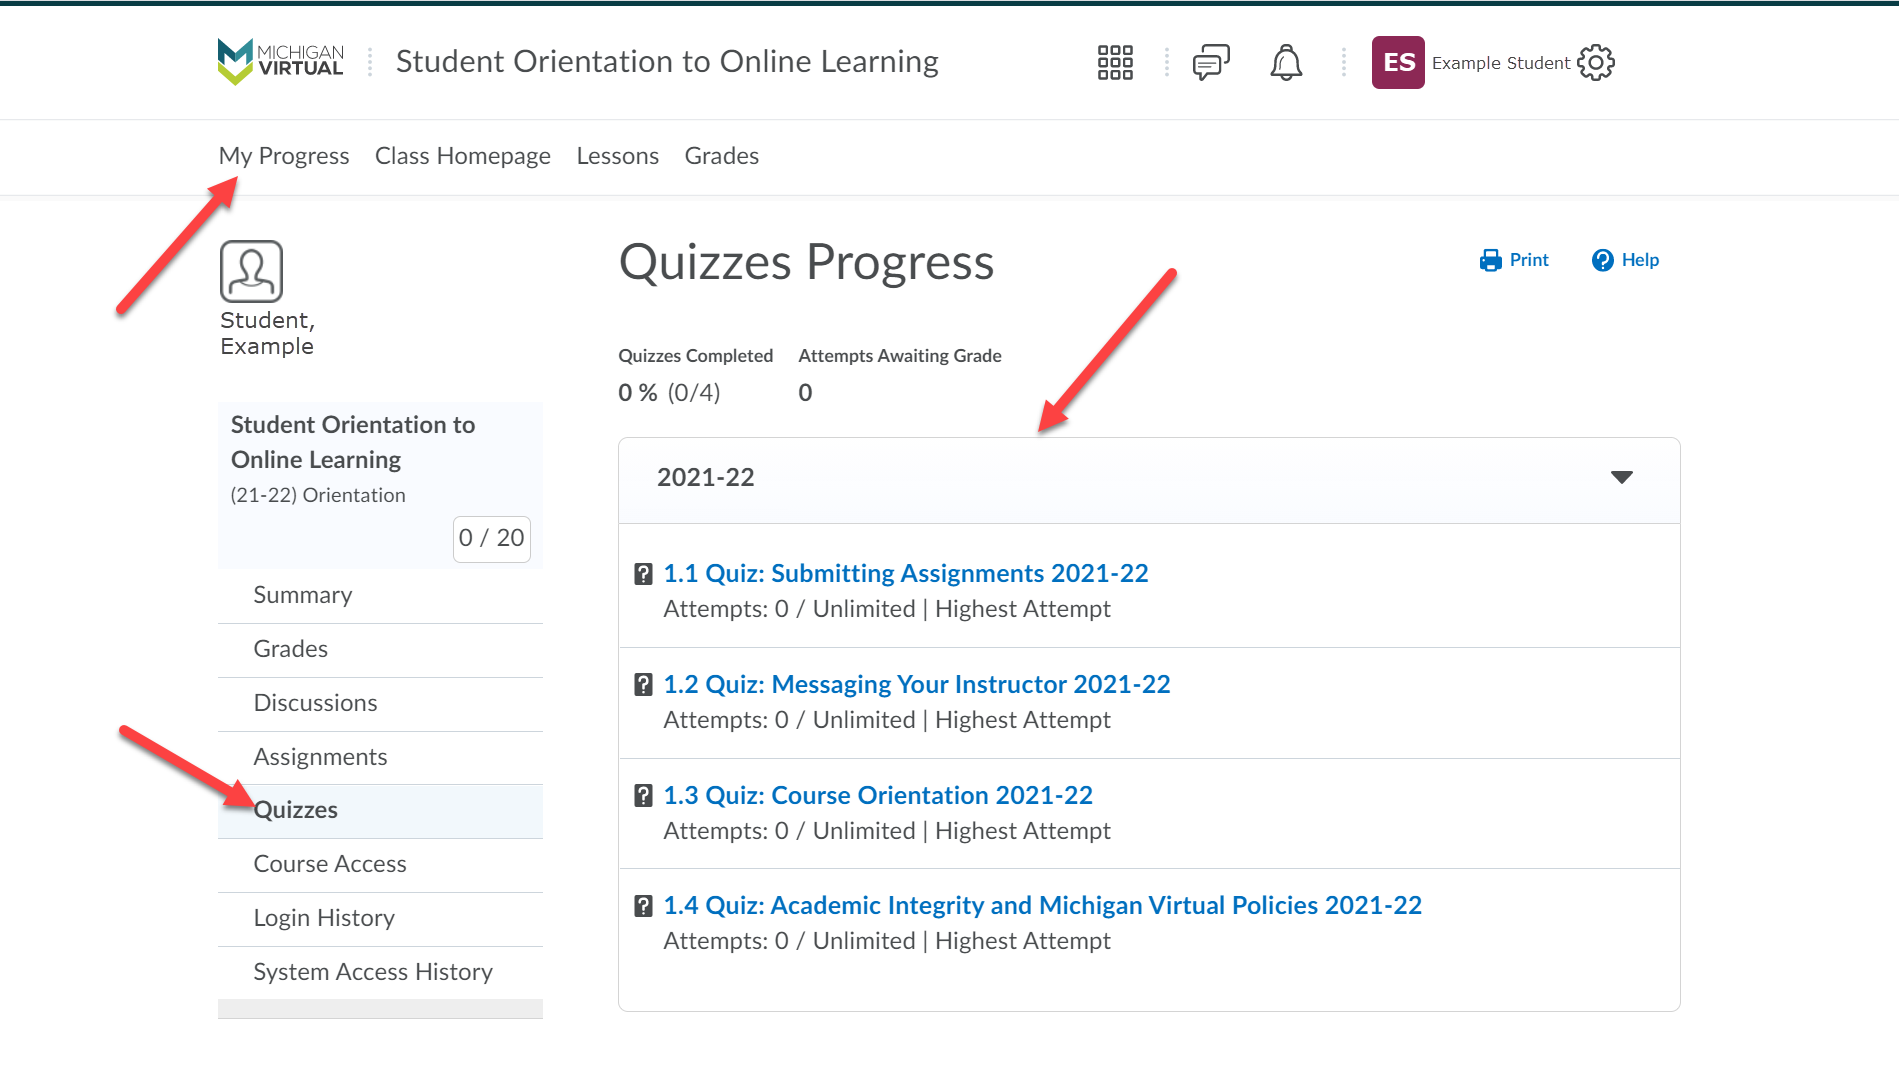 This image shows the Quizzes Progress page. Arrows point to the My Progress tab (top), Quizzes option (left menu) and another to the Quizzes Progress breakdown.